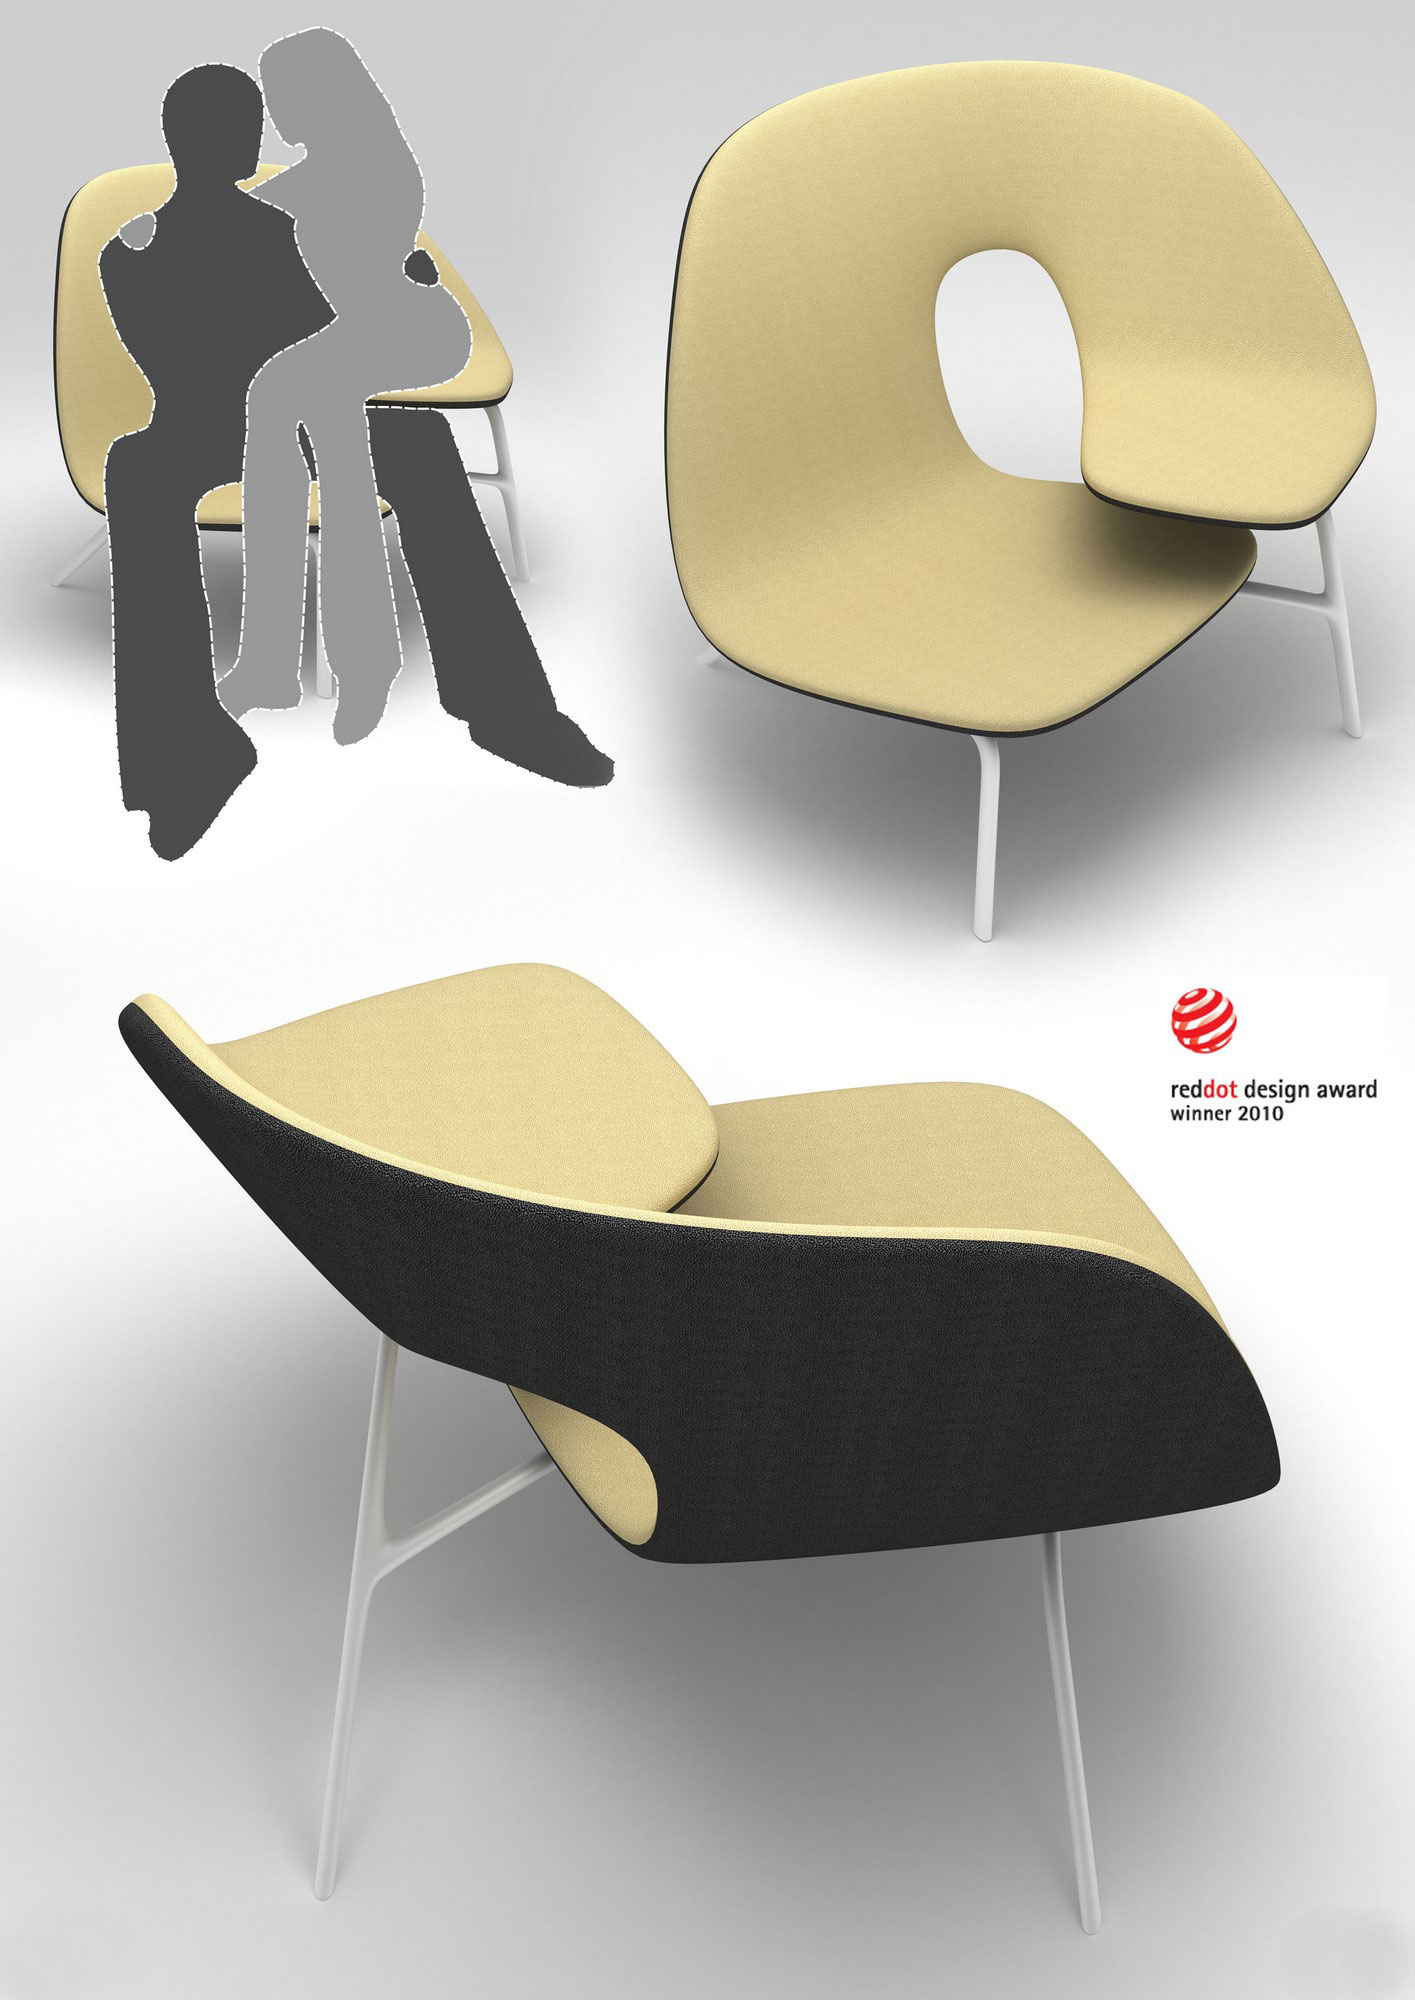 The hug chair by ilian milinov design your way for Products to design